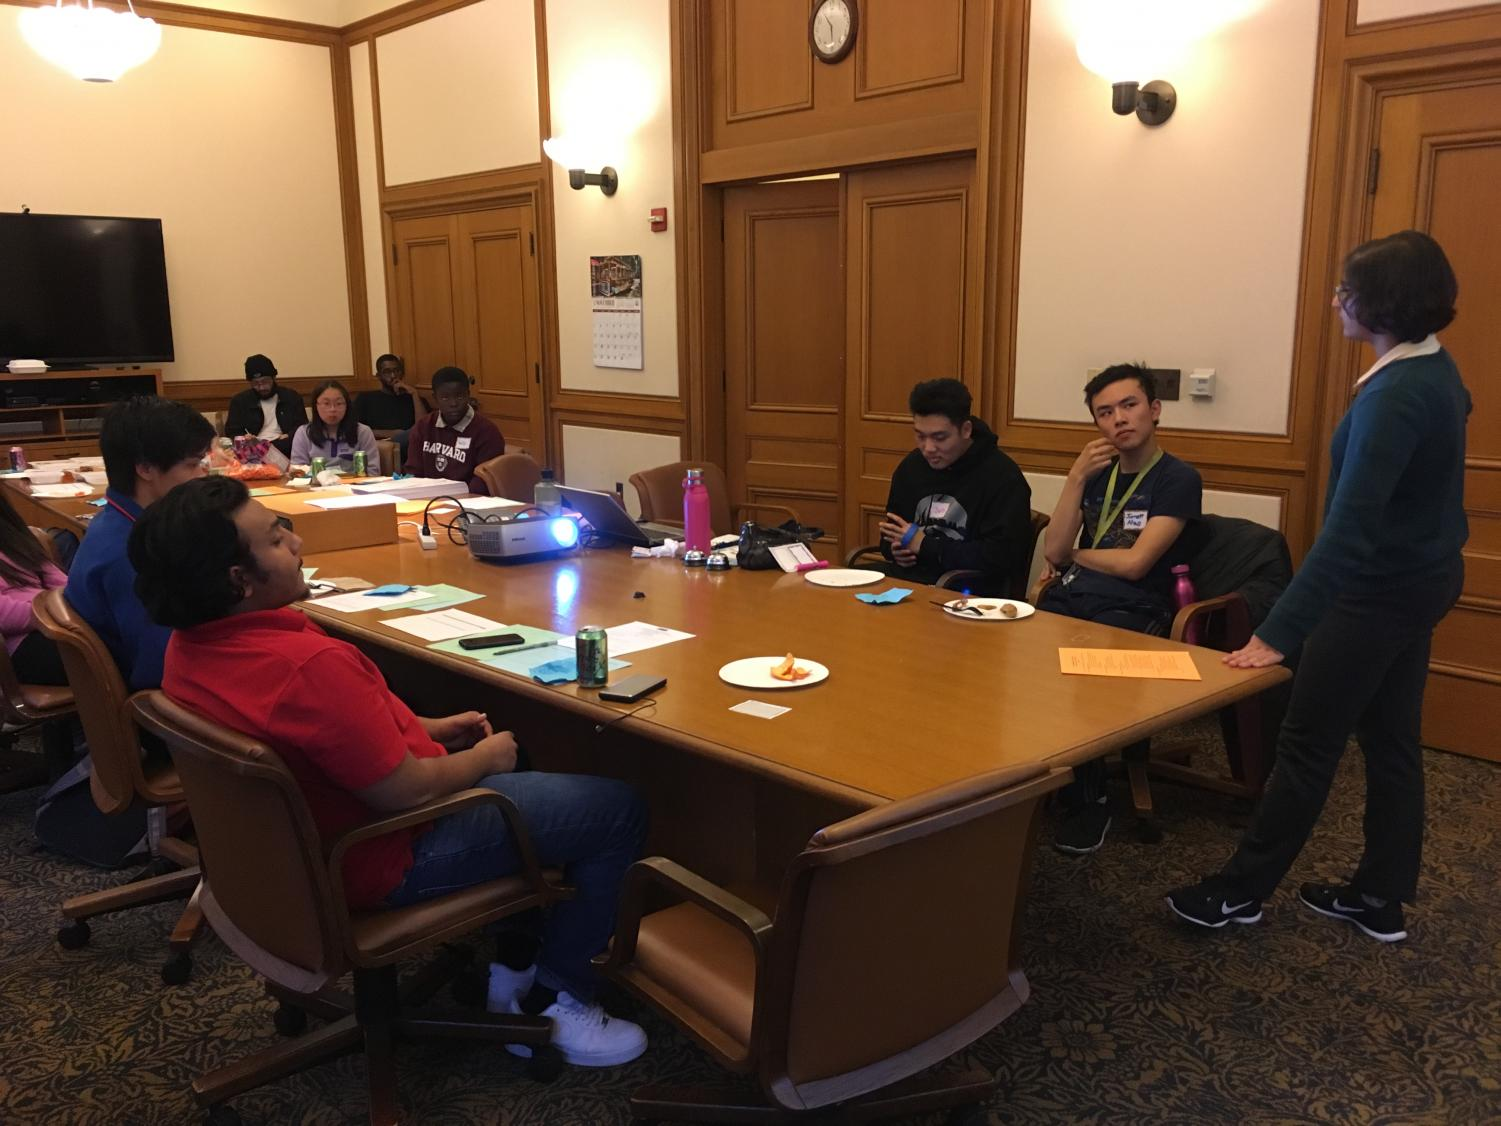 Arianna Nassiri presents to the San Francisco Youth Commission about voter pre-registration for those eligible to vote on election day. Nassiri was sworn into the Youth Commission this September with 17 other Bay Area youth, ages 12 to 23.